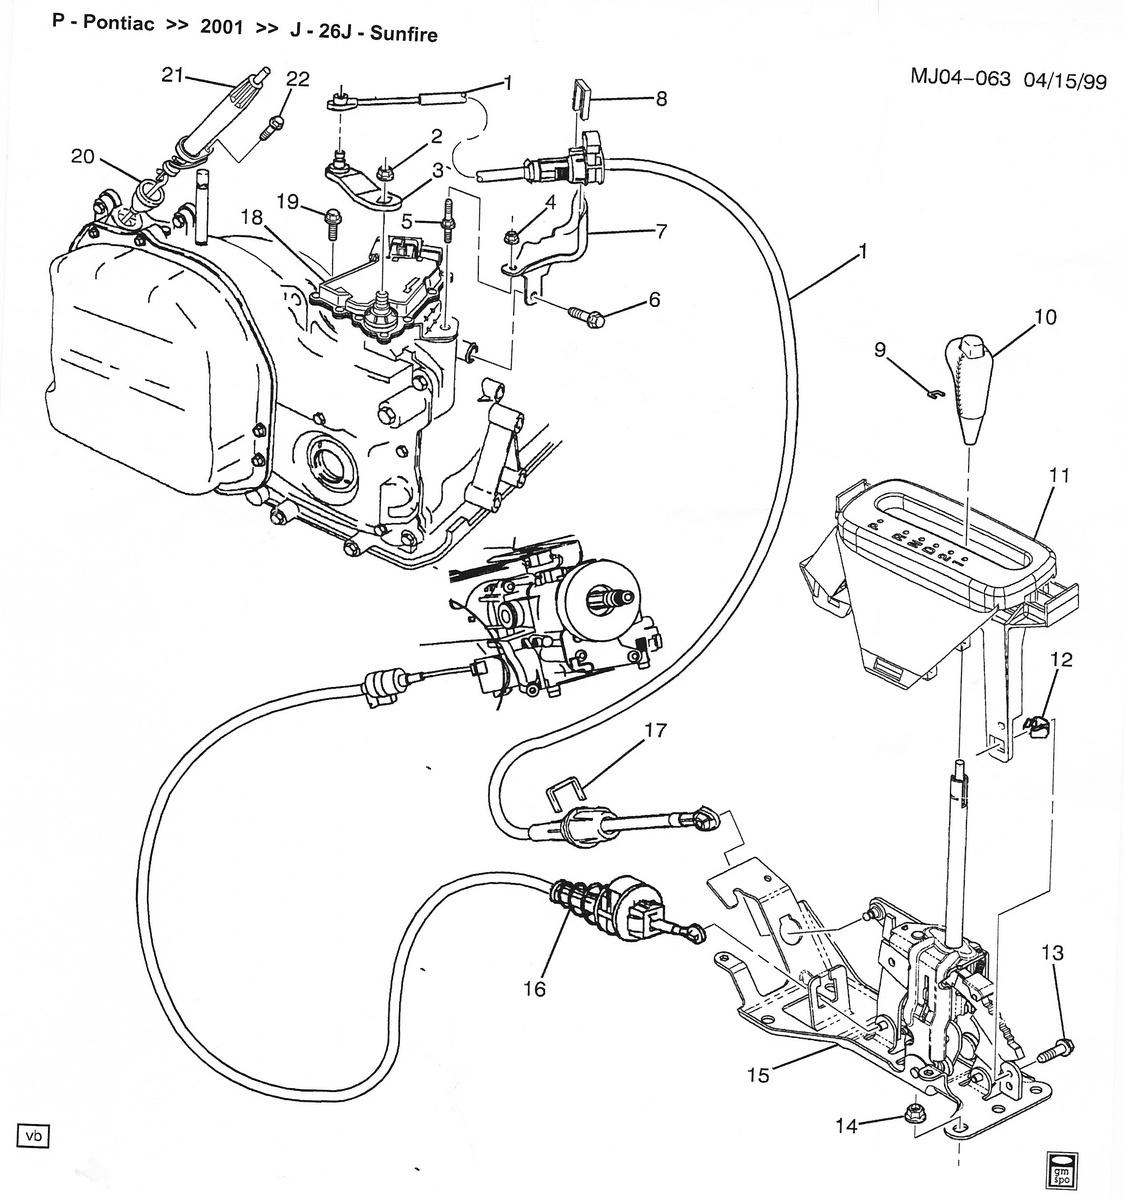 Honda Civic Why Wont My Windshield Wipers Work 377622 in addition 1993 Accord Ex 4dr Under Dash Fuse Diagram 3244340 further 1991 Integra Neutral Safety Switch Location moreover Honda Civic Fuse Box Diagrams 374430 in addition Mazda Engine Diagrams 1994 B2300. on 93 honda accord fuse box diagram